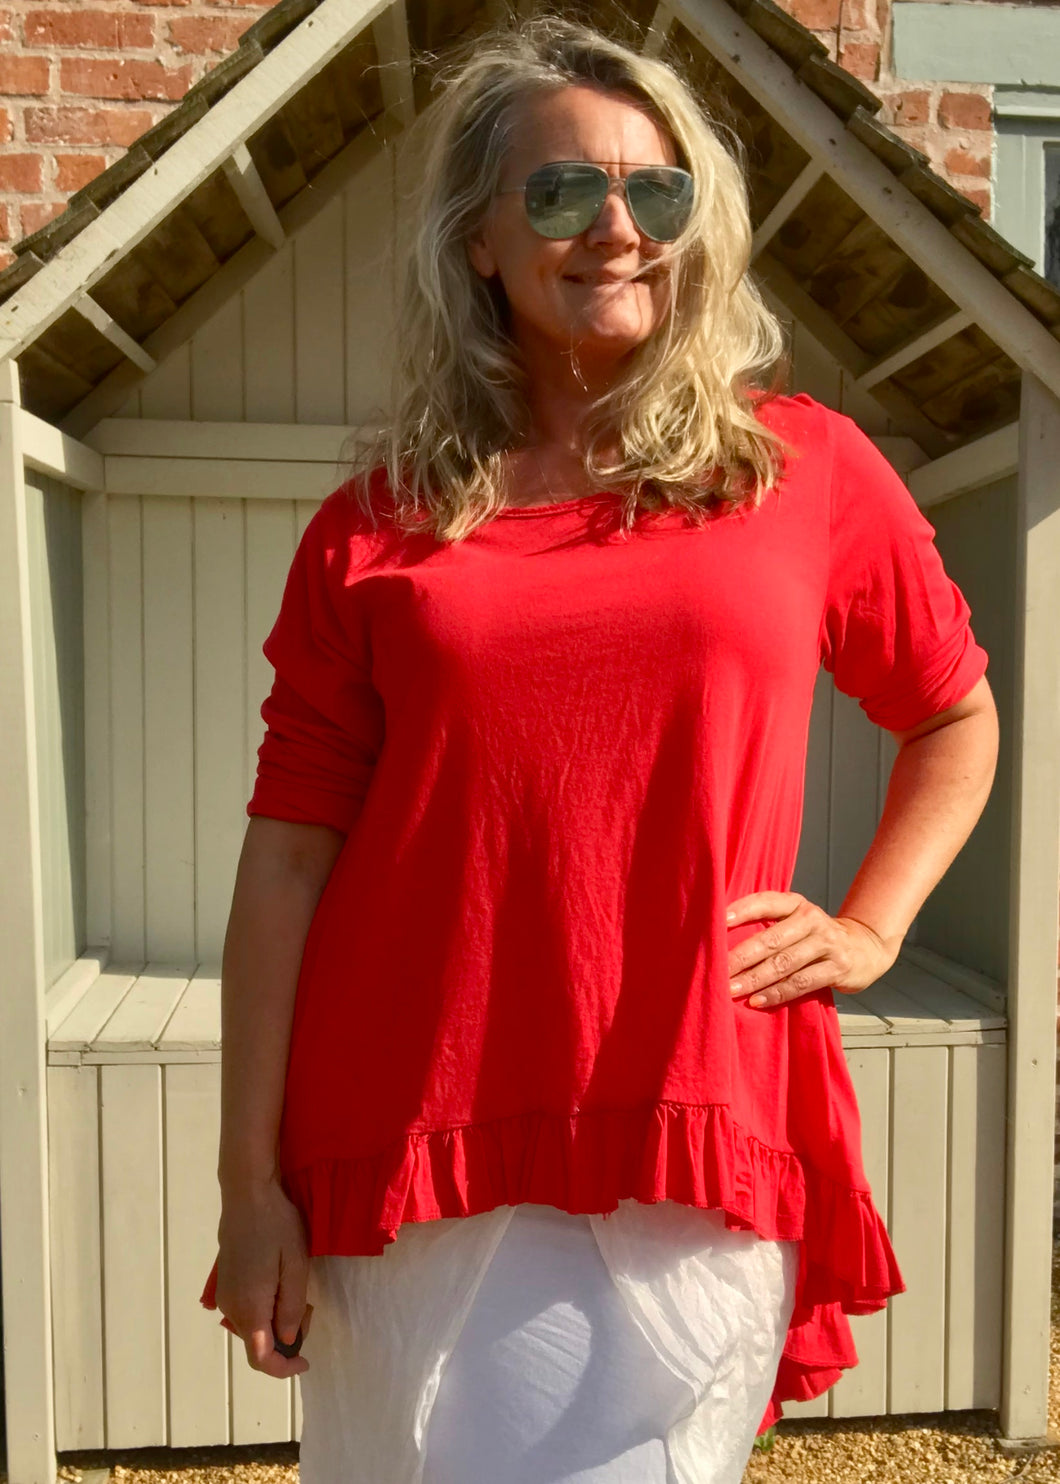 Frill Bottomed T Shirt Top 100% Cotton in Red Made In Italy By Feathers Of Italy One Size - Feathers Of Italy